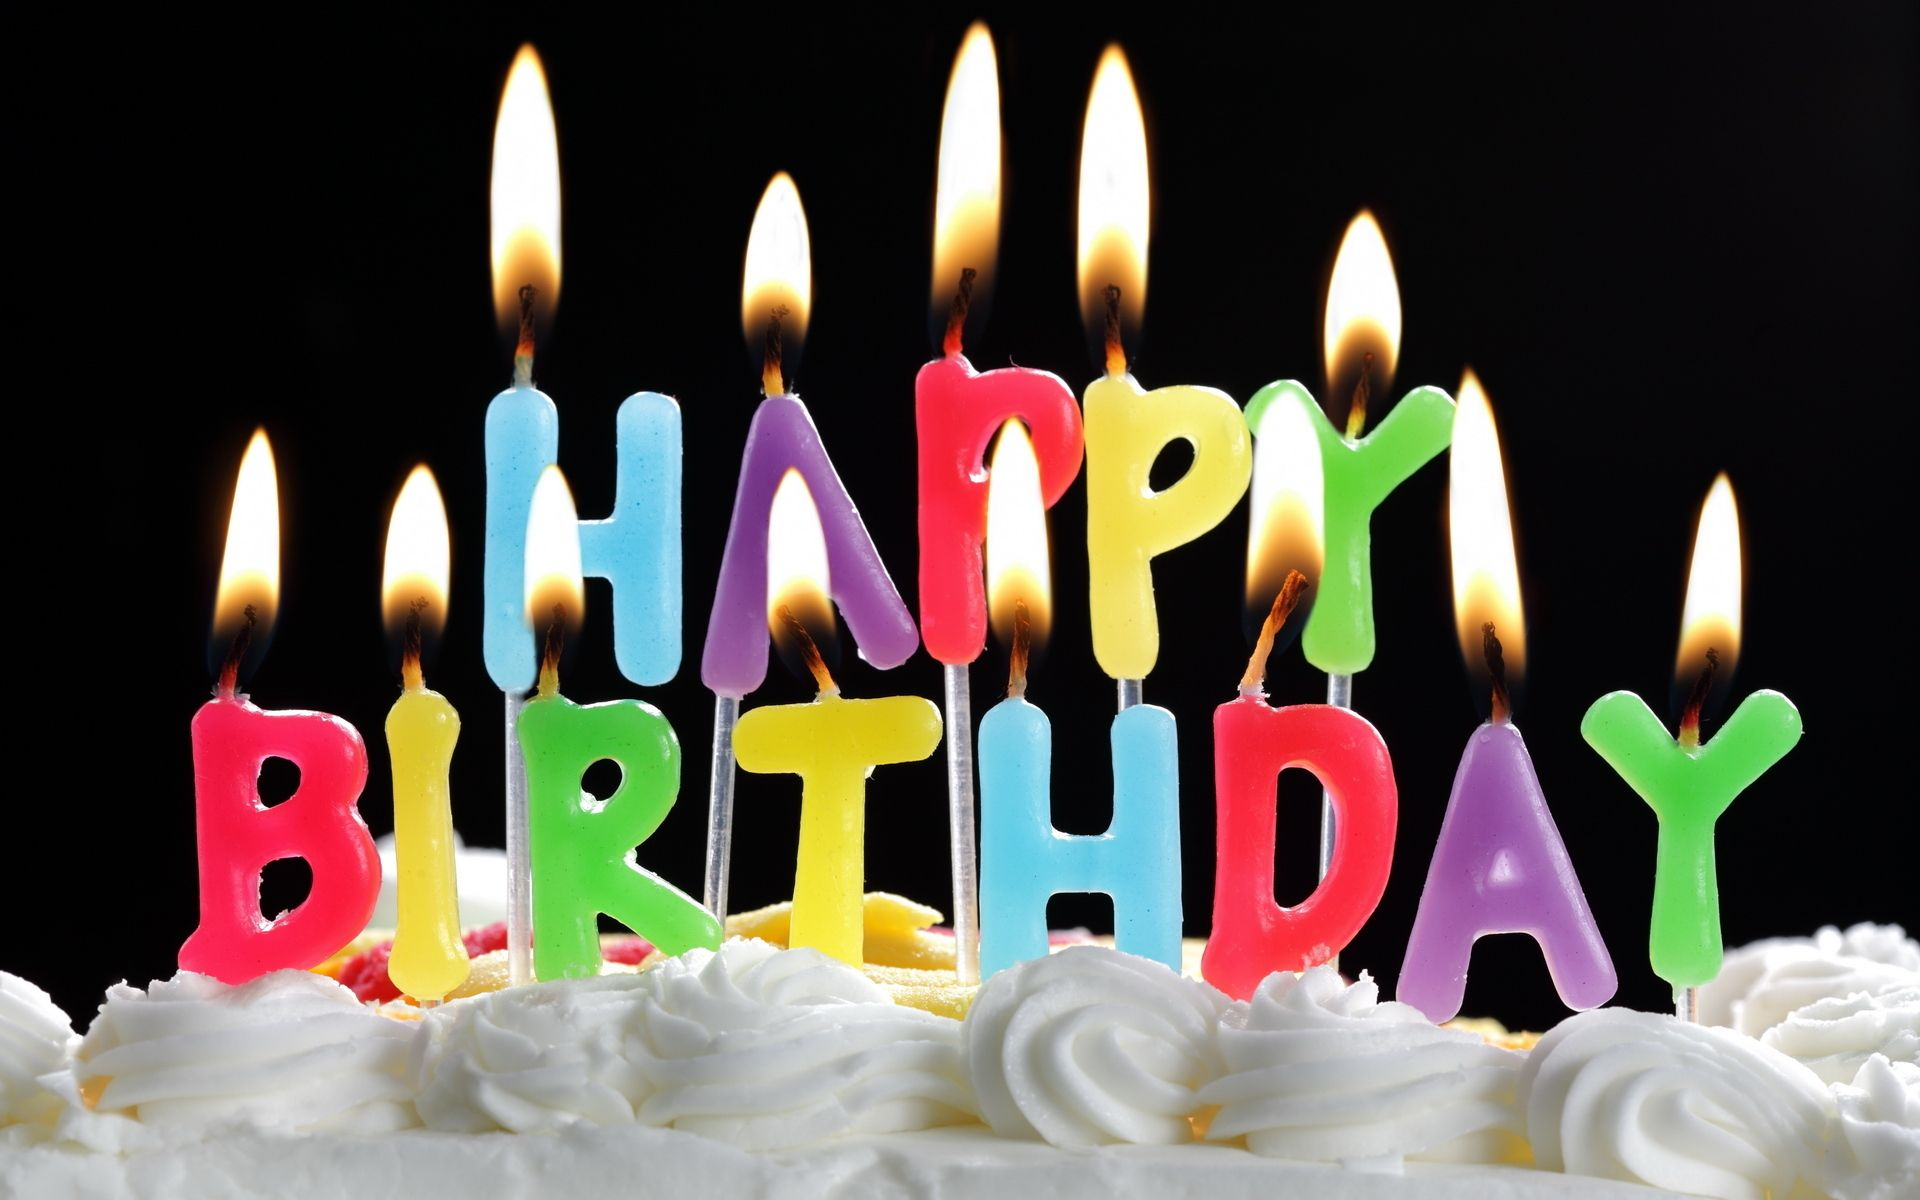 Colorful Birthday Candles And Sign In The Dark Happy Birthday Pictures Images Pics In 2020 Happy Birthday Candles Happy Birthday Wallpaper Happy Birthday Pictures